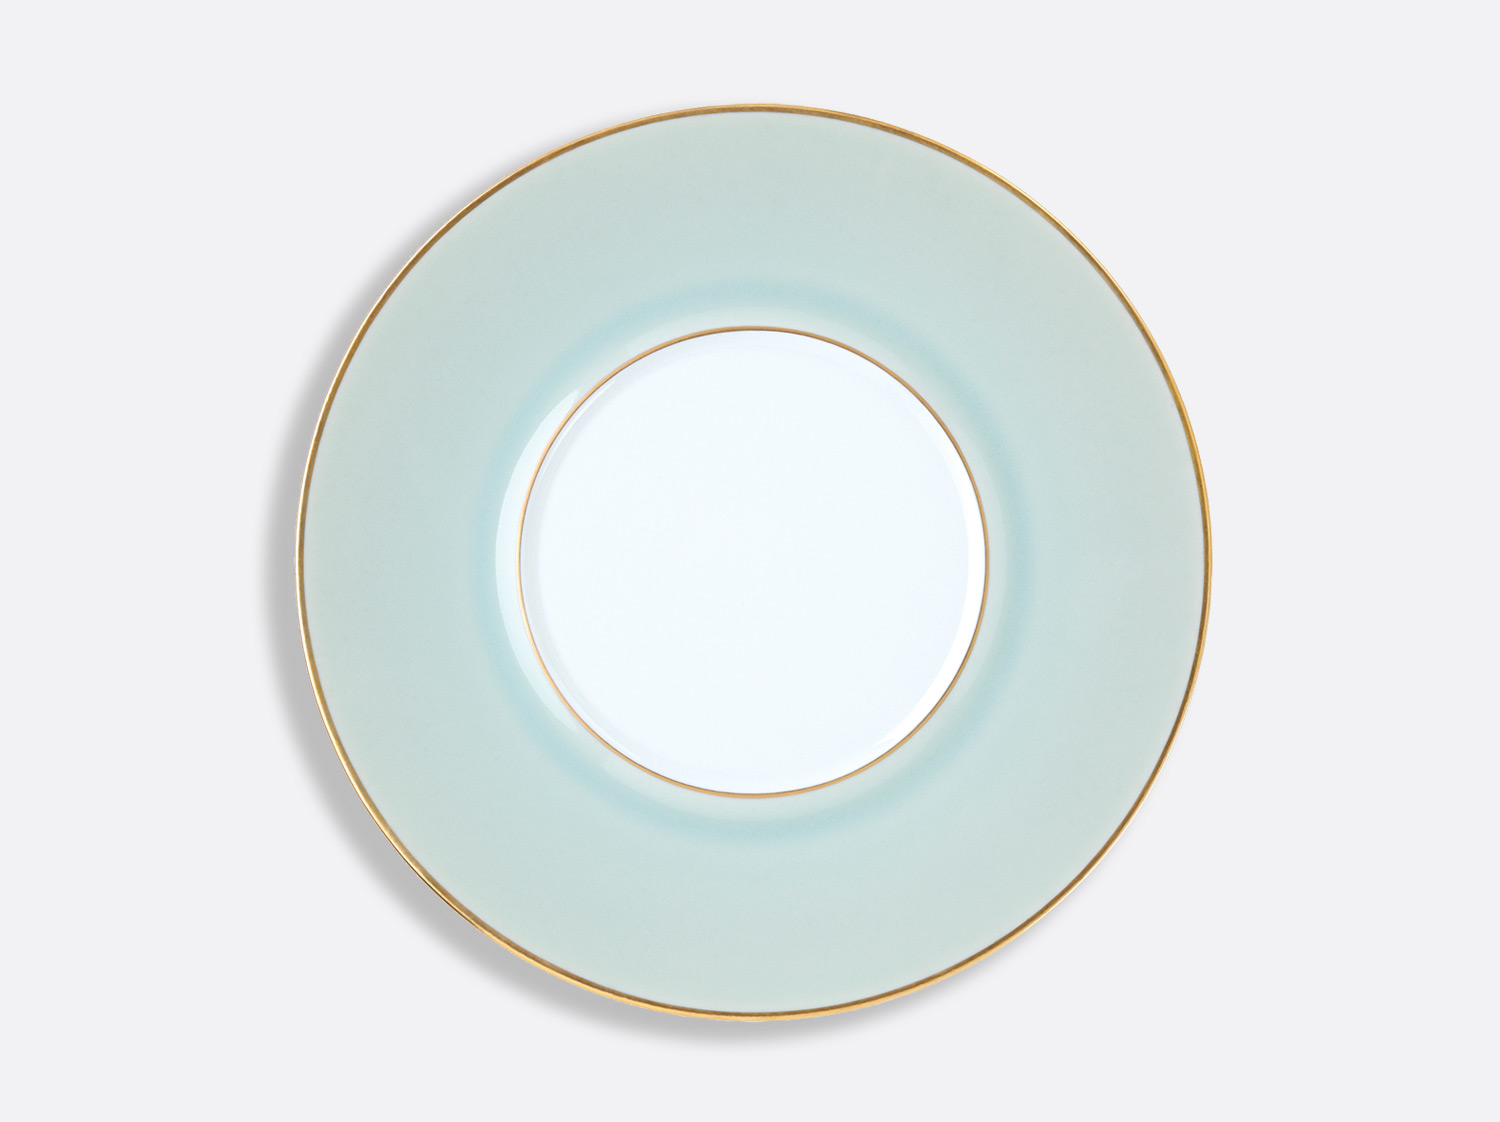 Assiette Shogun Celadon Or 29,5 cm en porcelaine de la collection Celsius Celadon Or Bernardaud